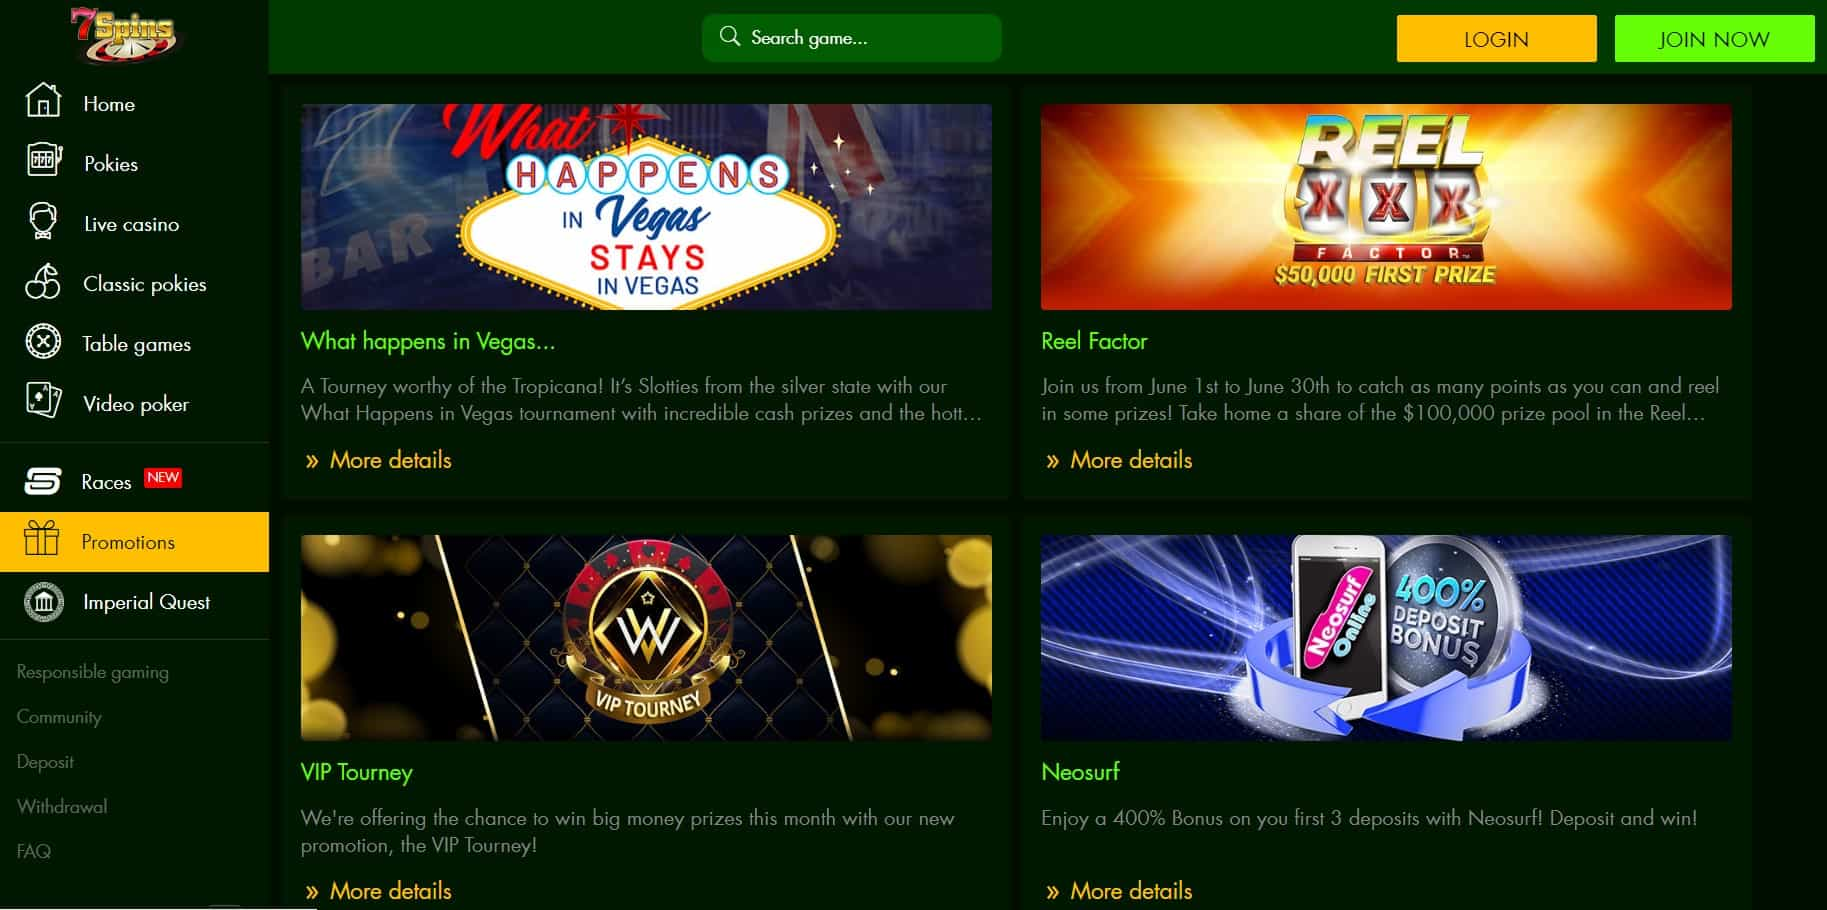 7 spins casino promotions